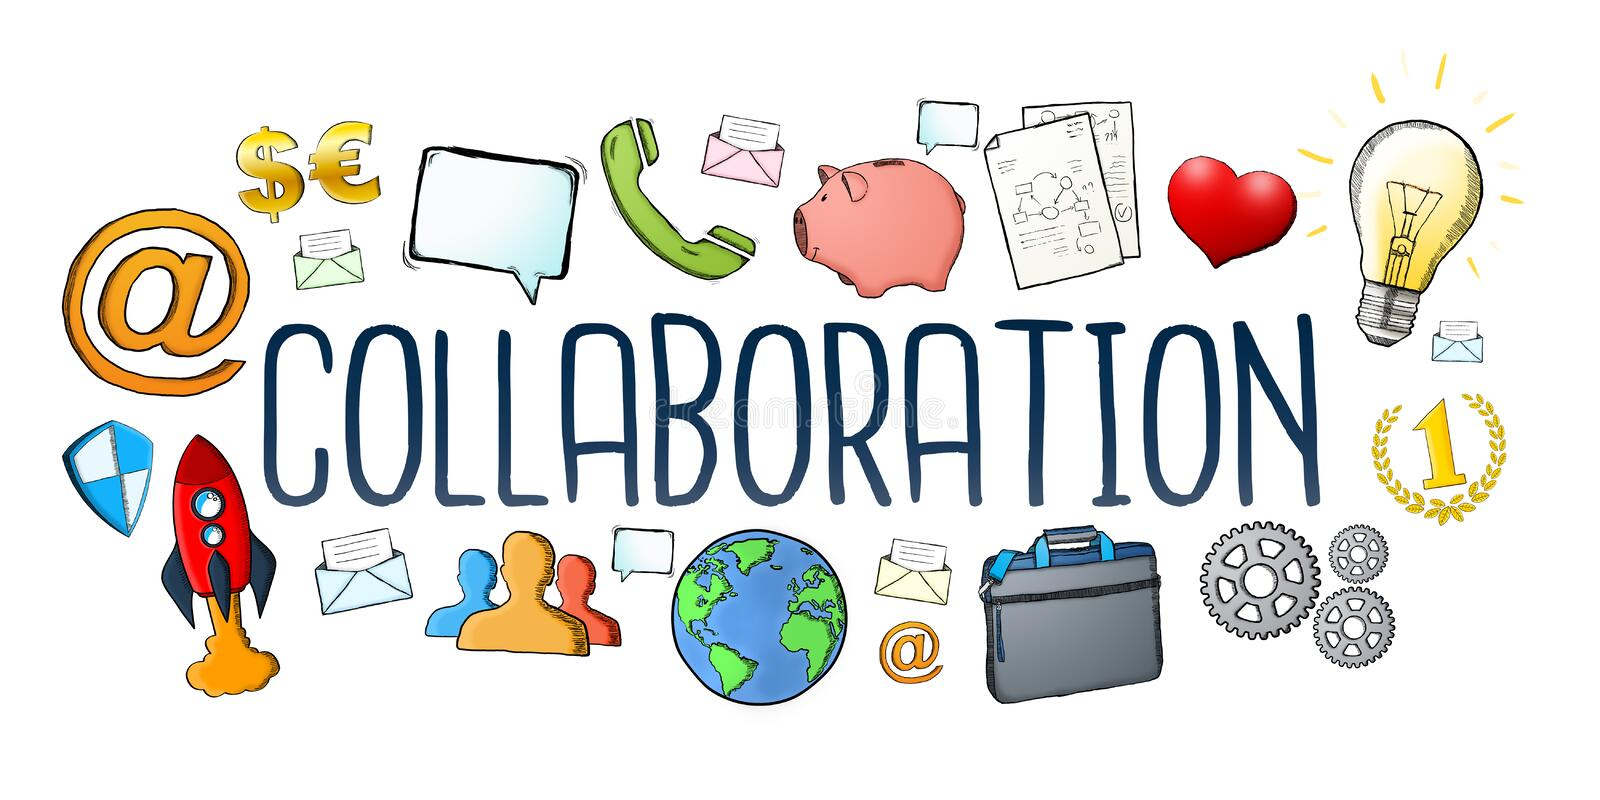 Hand-drawn collaboration text with icon royalty free illustration